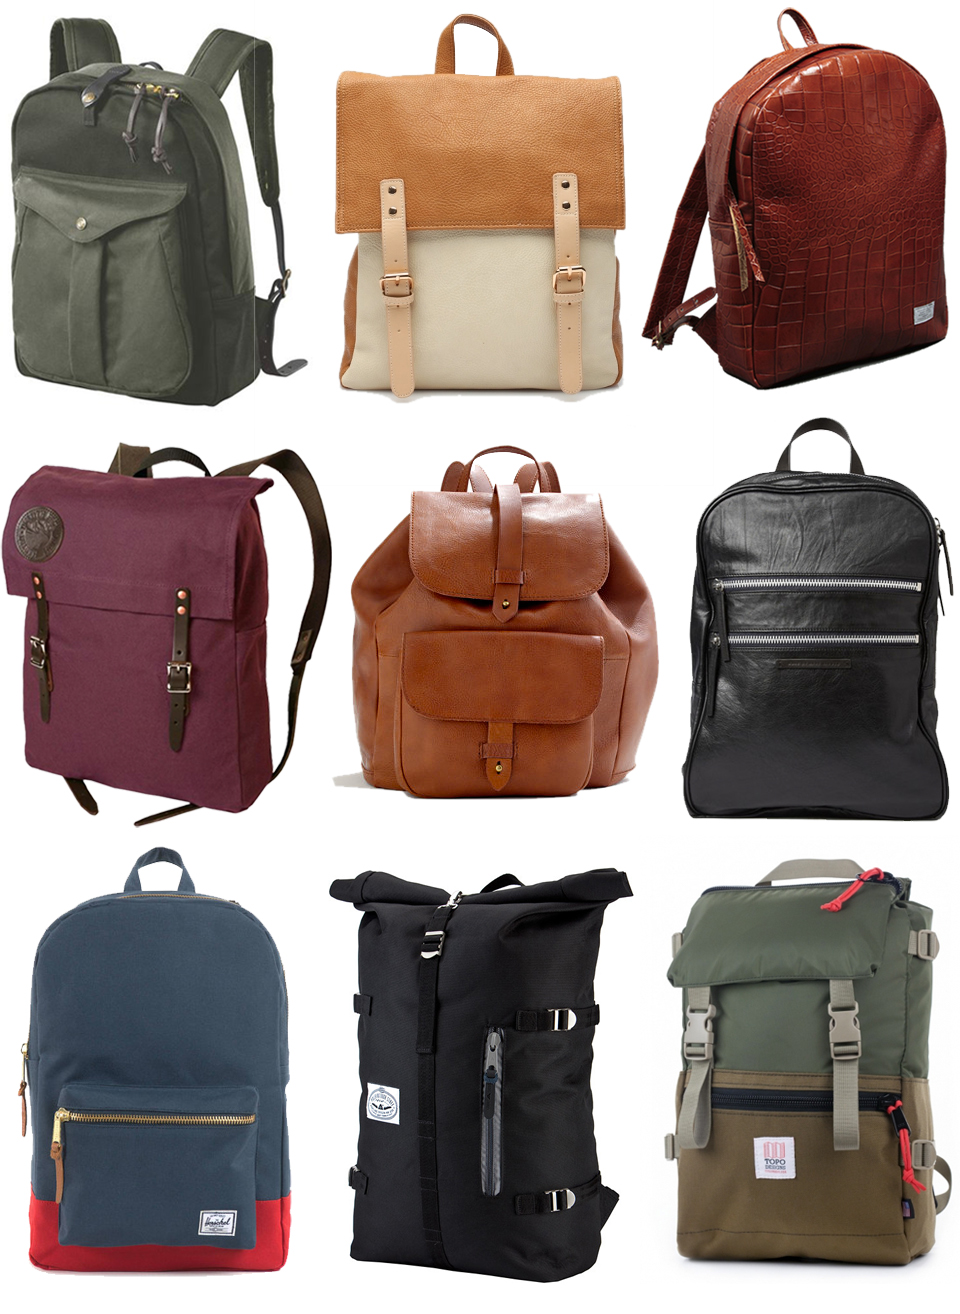 Filson  /  Rockland  /  Draught Dry Goods  /  Duluth  /  Madewell  /  Marc by Marc Jacobs  /  Herschel  /  Poler  /  Topo